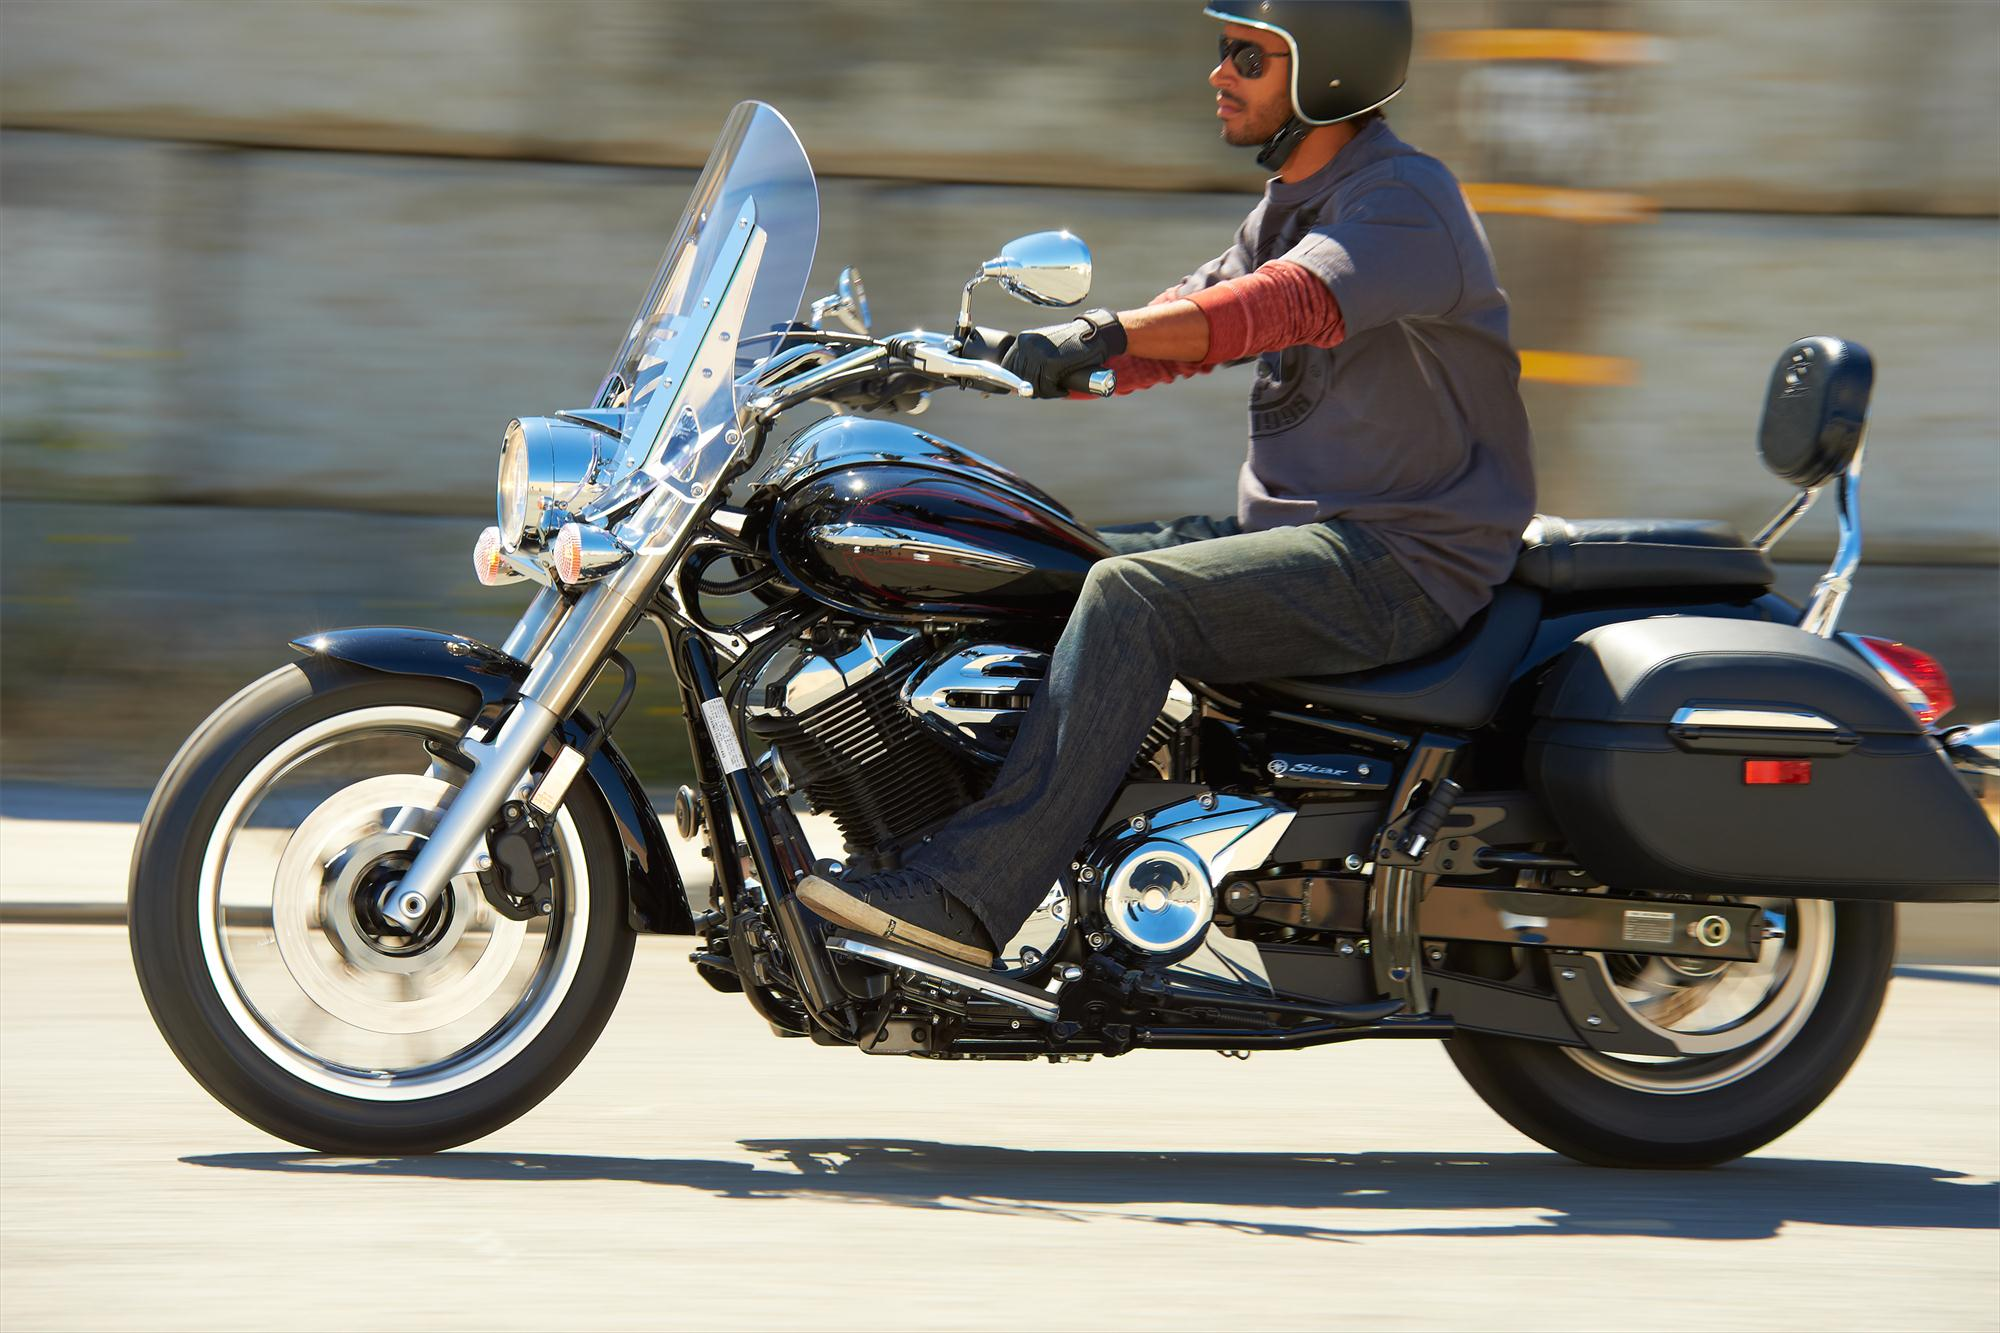 2013 V Star 950 Tourer The Feature Loaded Middleweight Traveling